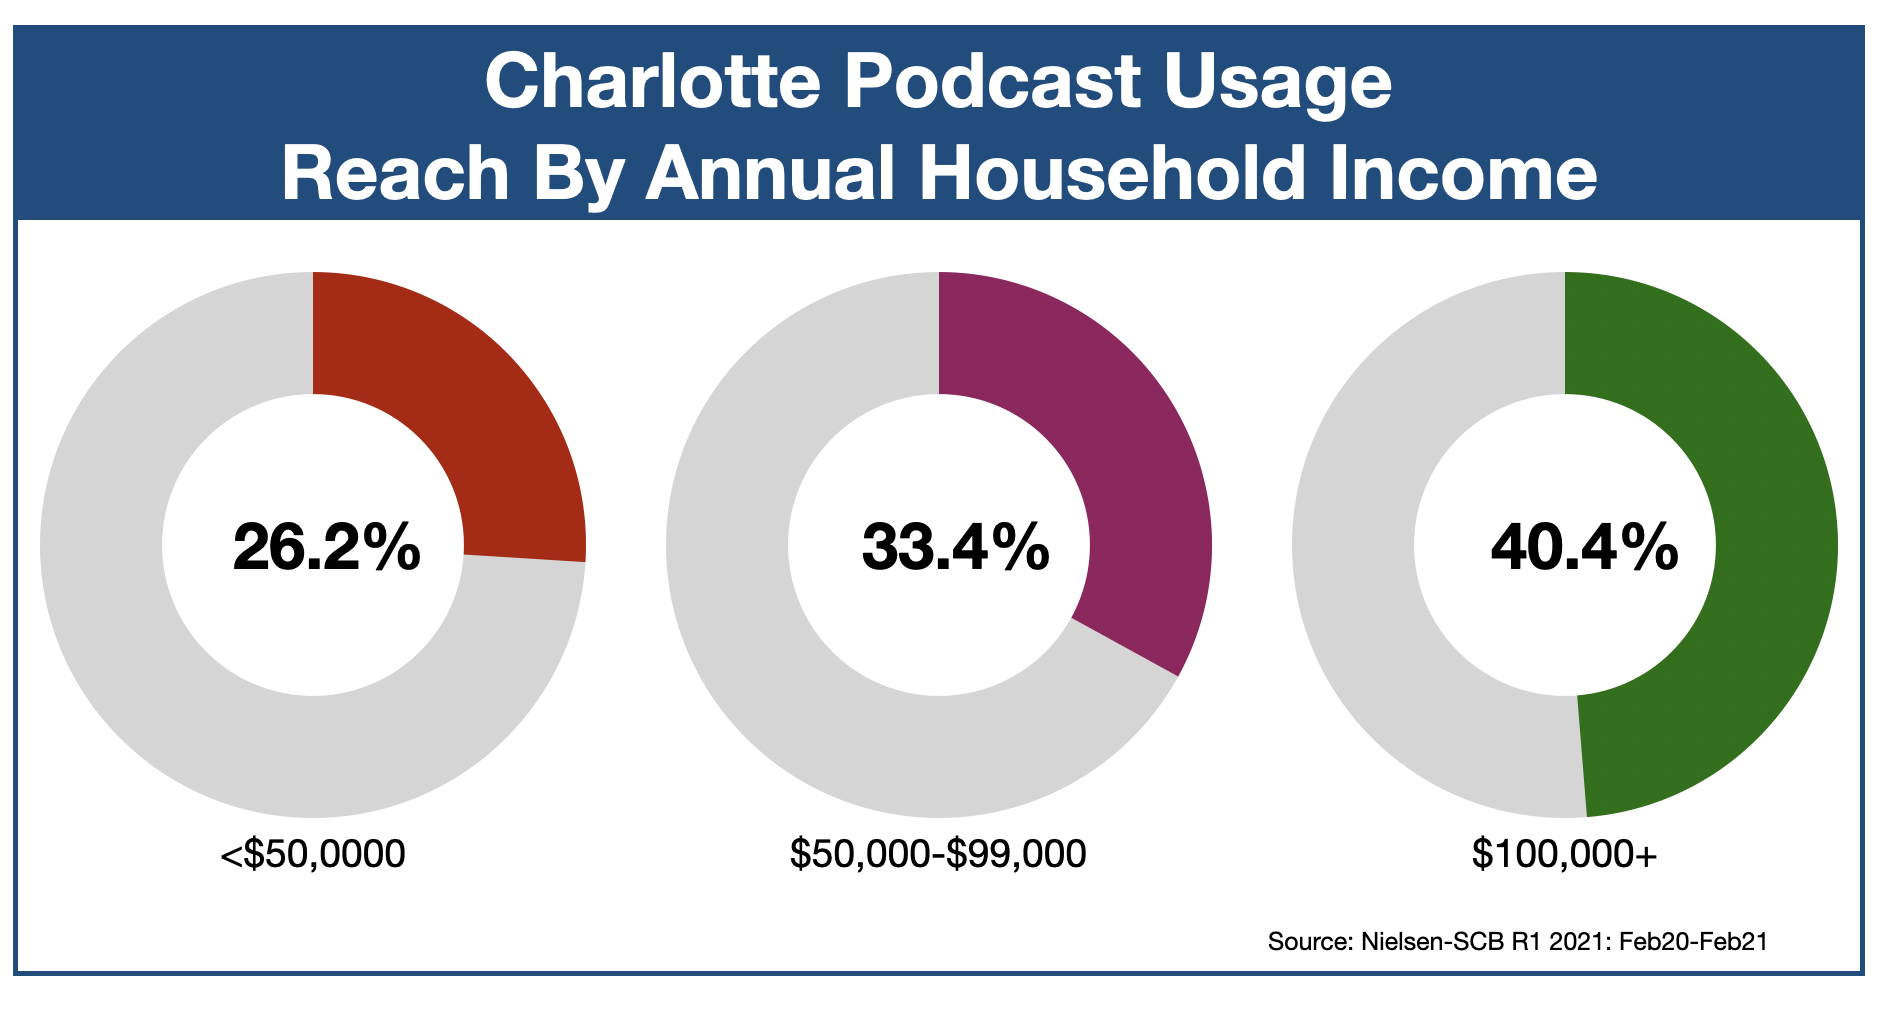 Podcast Advertising In Charlotte Income